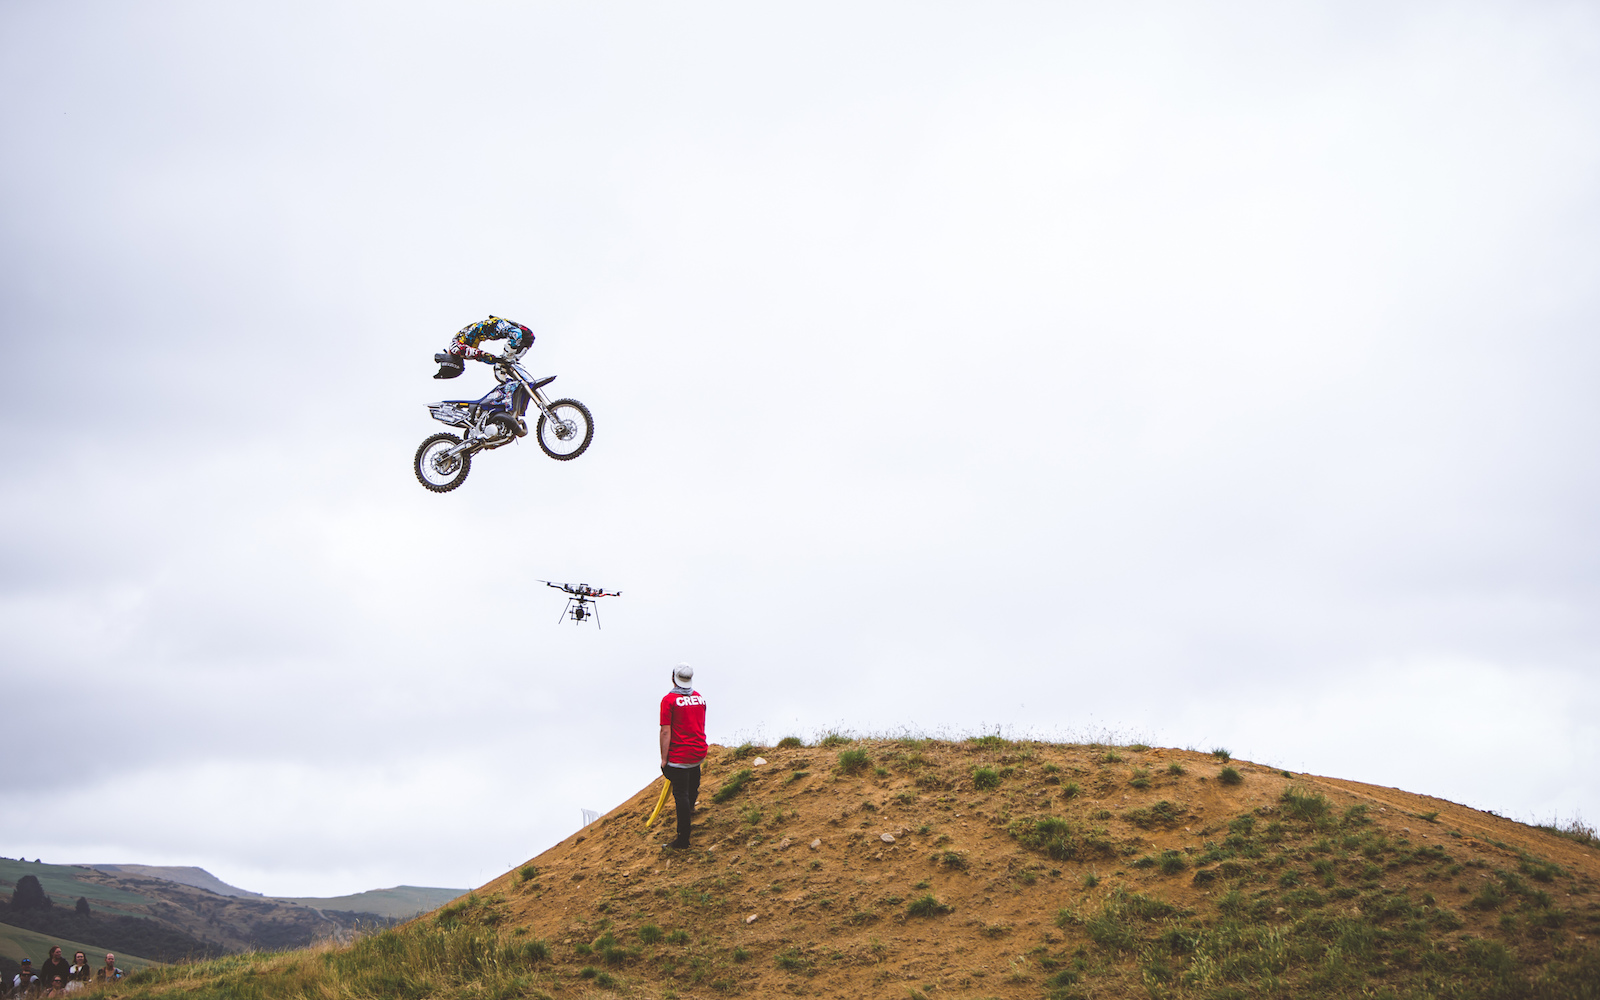 Im not sure i can ever do this on the ground let alone on a bike in the air.